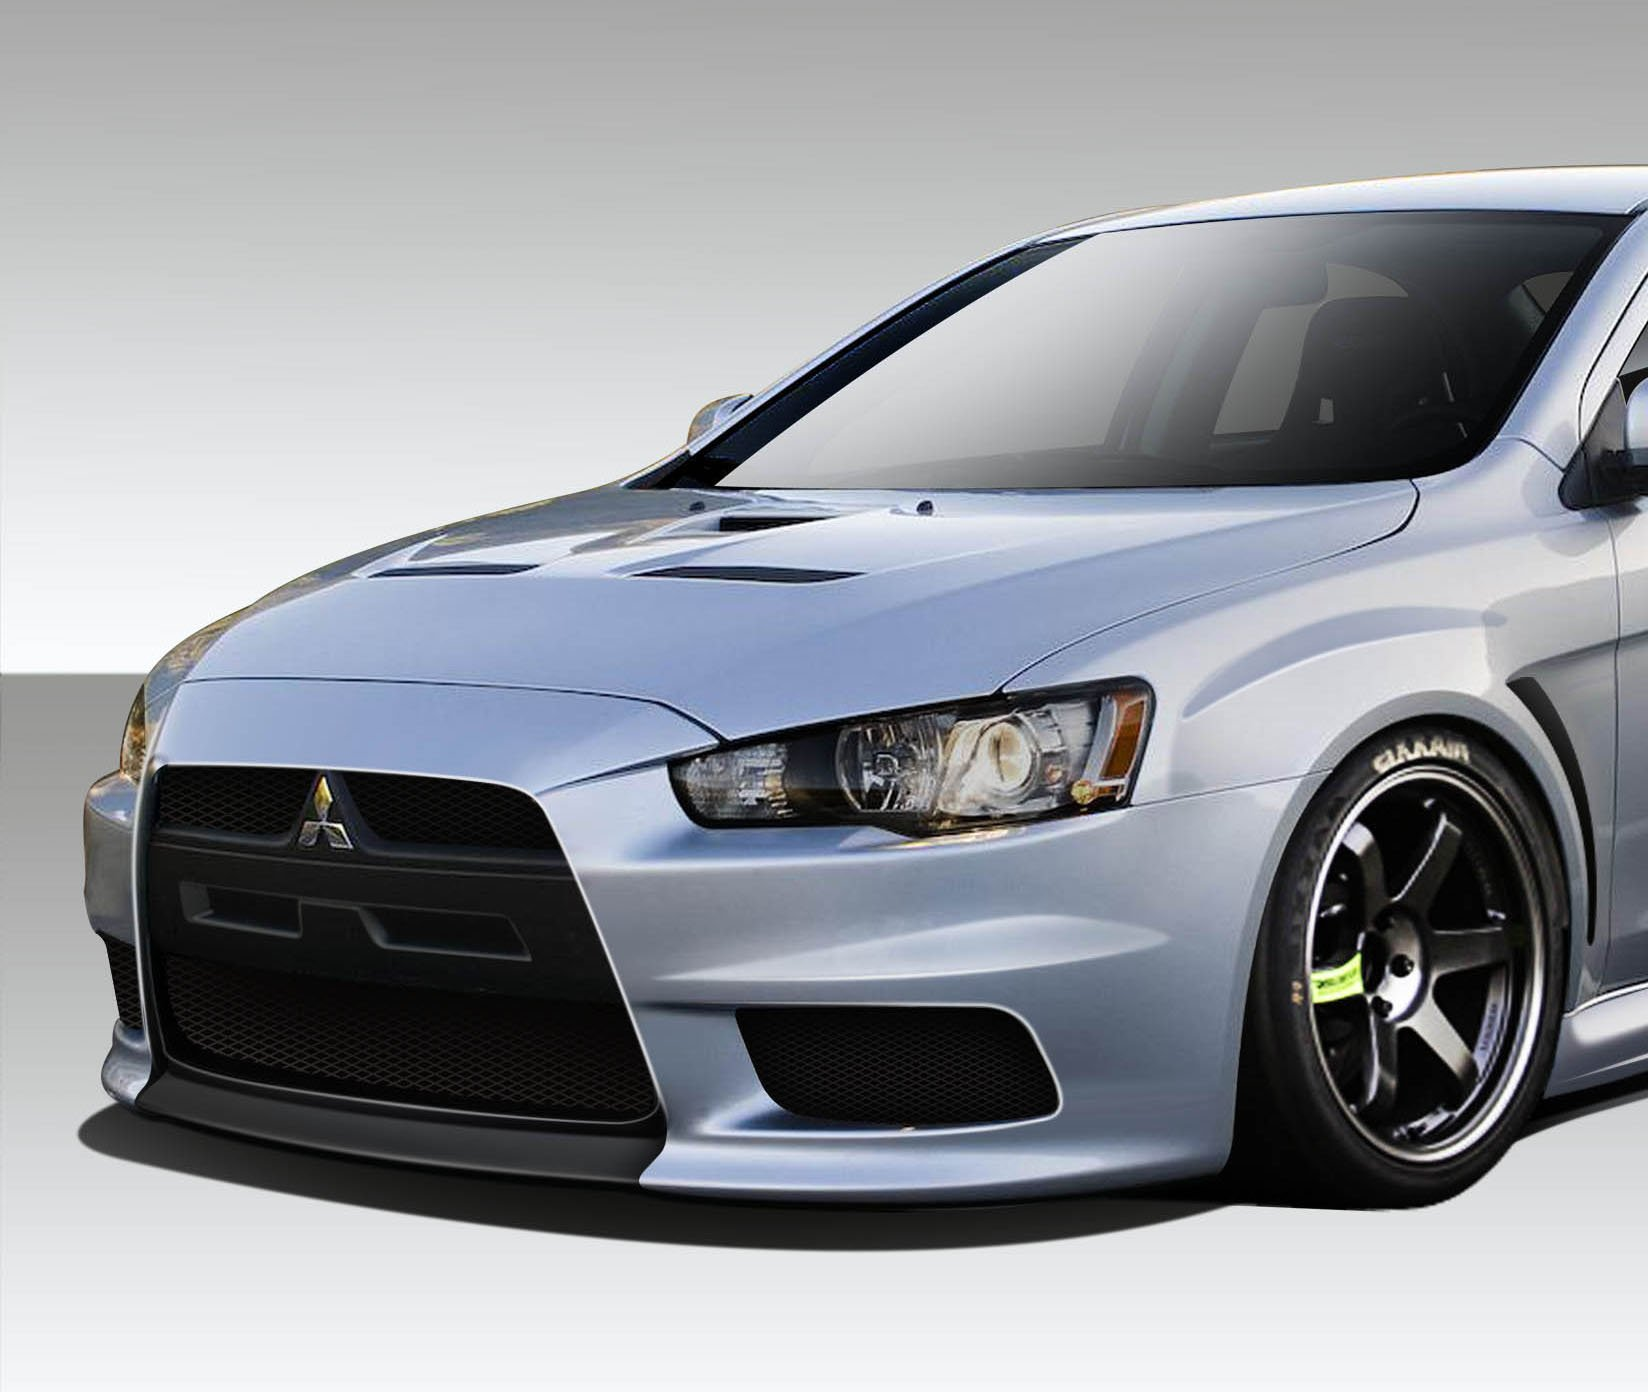 1 Piece Extreme Dimensions Duraflex Replacement for 2008-2017 Mitsubishi Lancer Evo X Look Front Bumper Cover